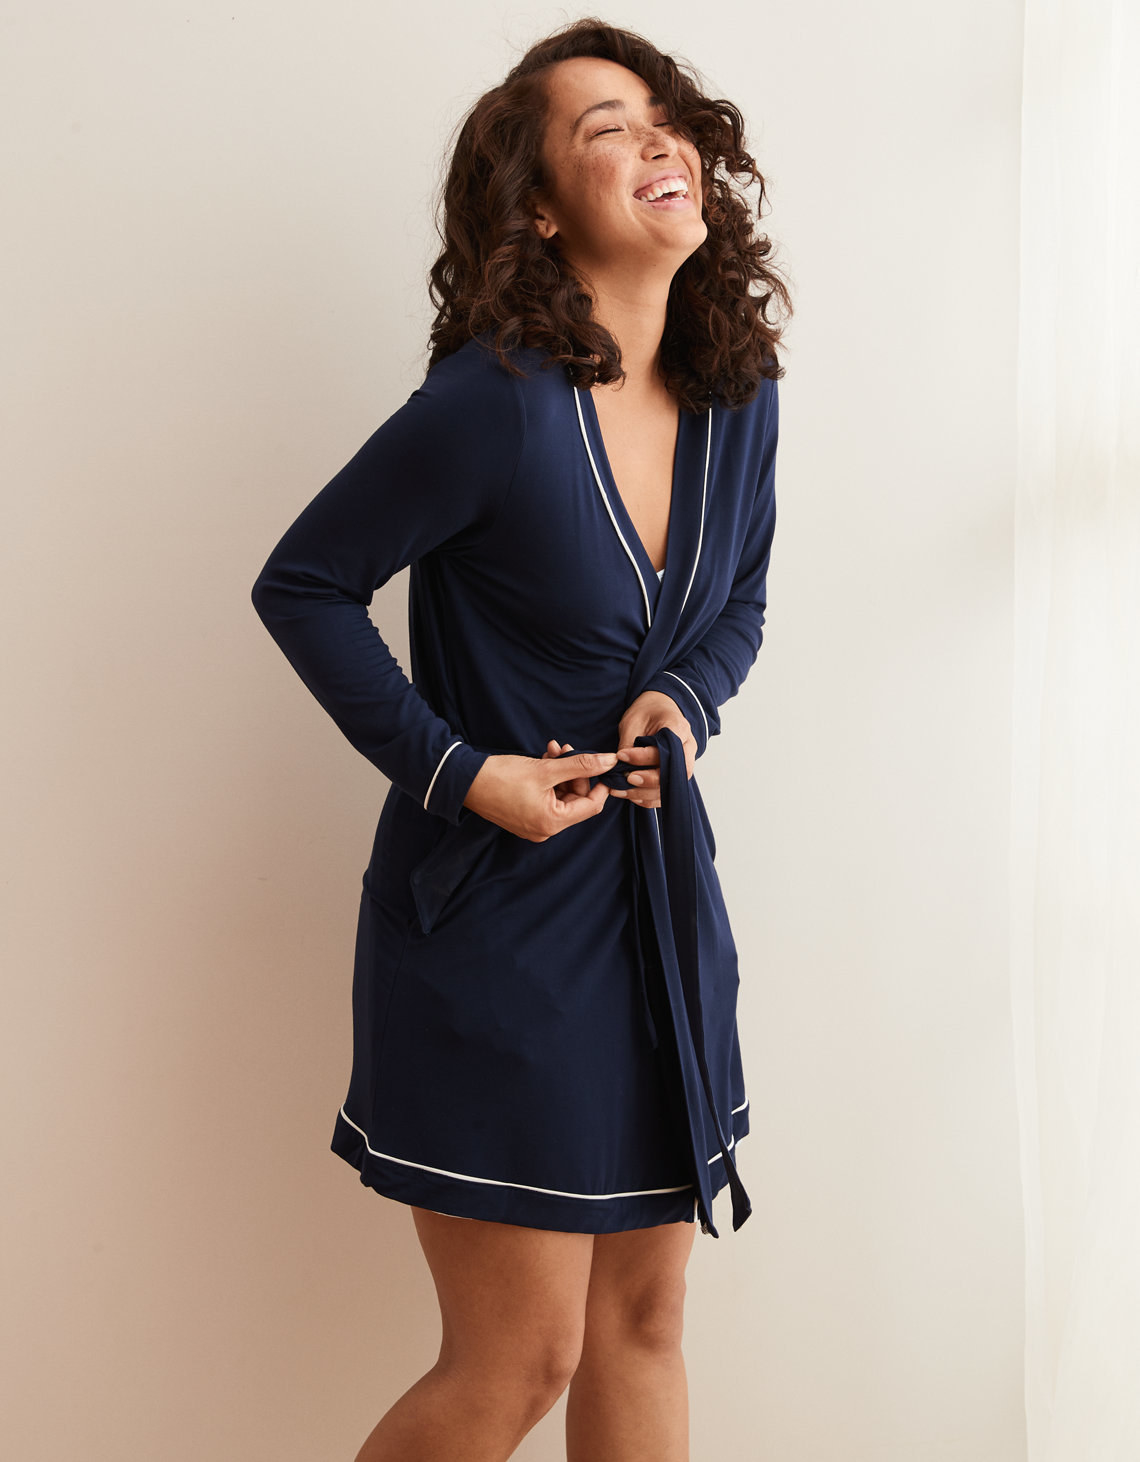 A luxuriously soft jersey or fleece robe with delicate piping checkered  detailing e82584c14